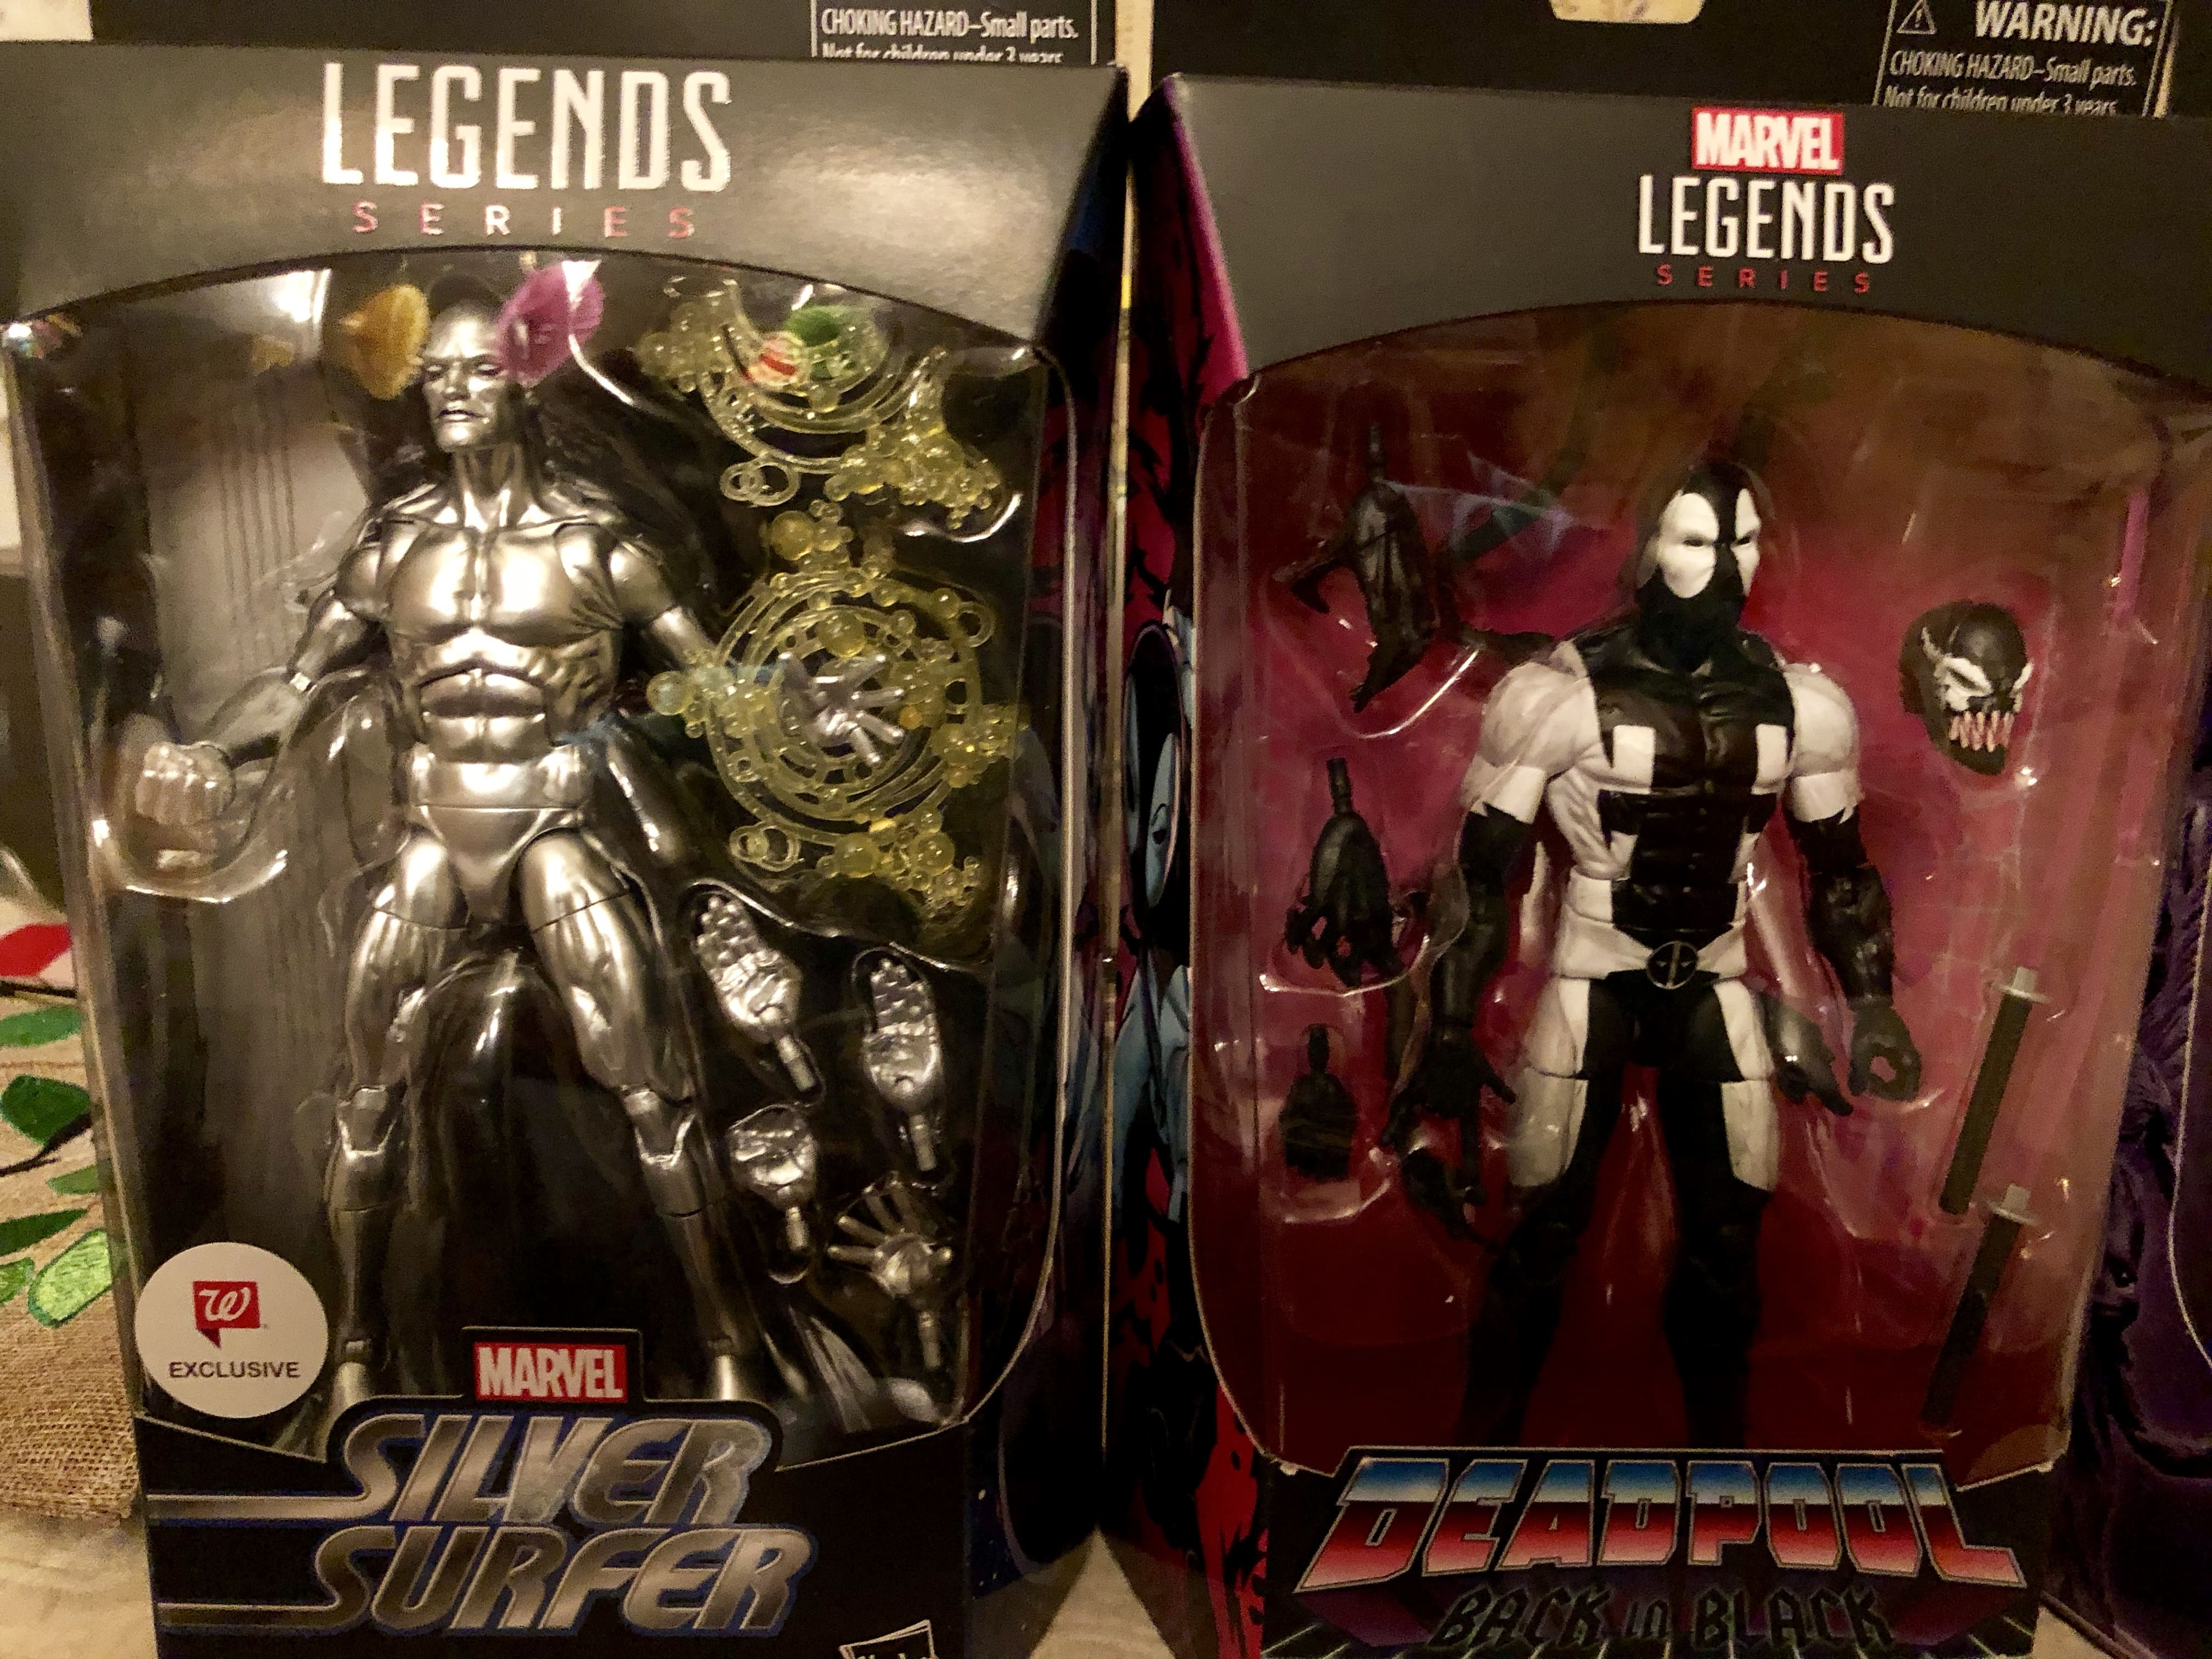 Marvel characters we would like to see become a Marvel Legend action figure